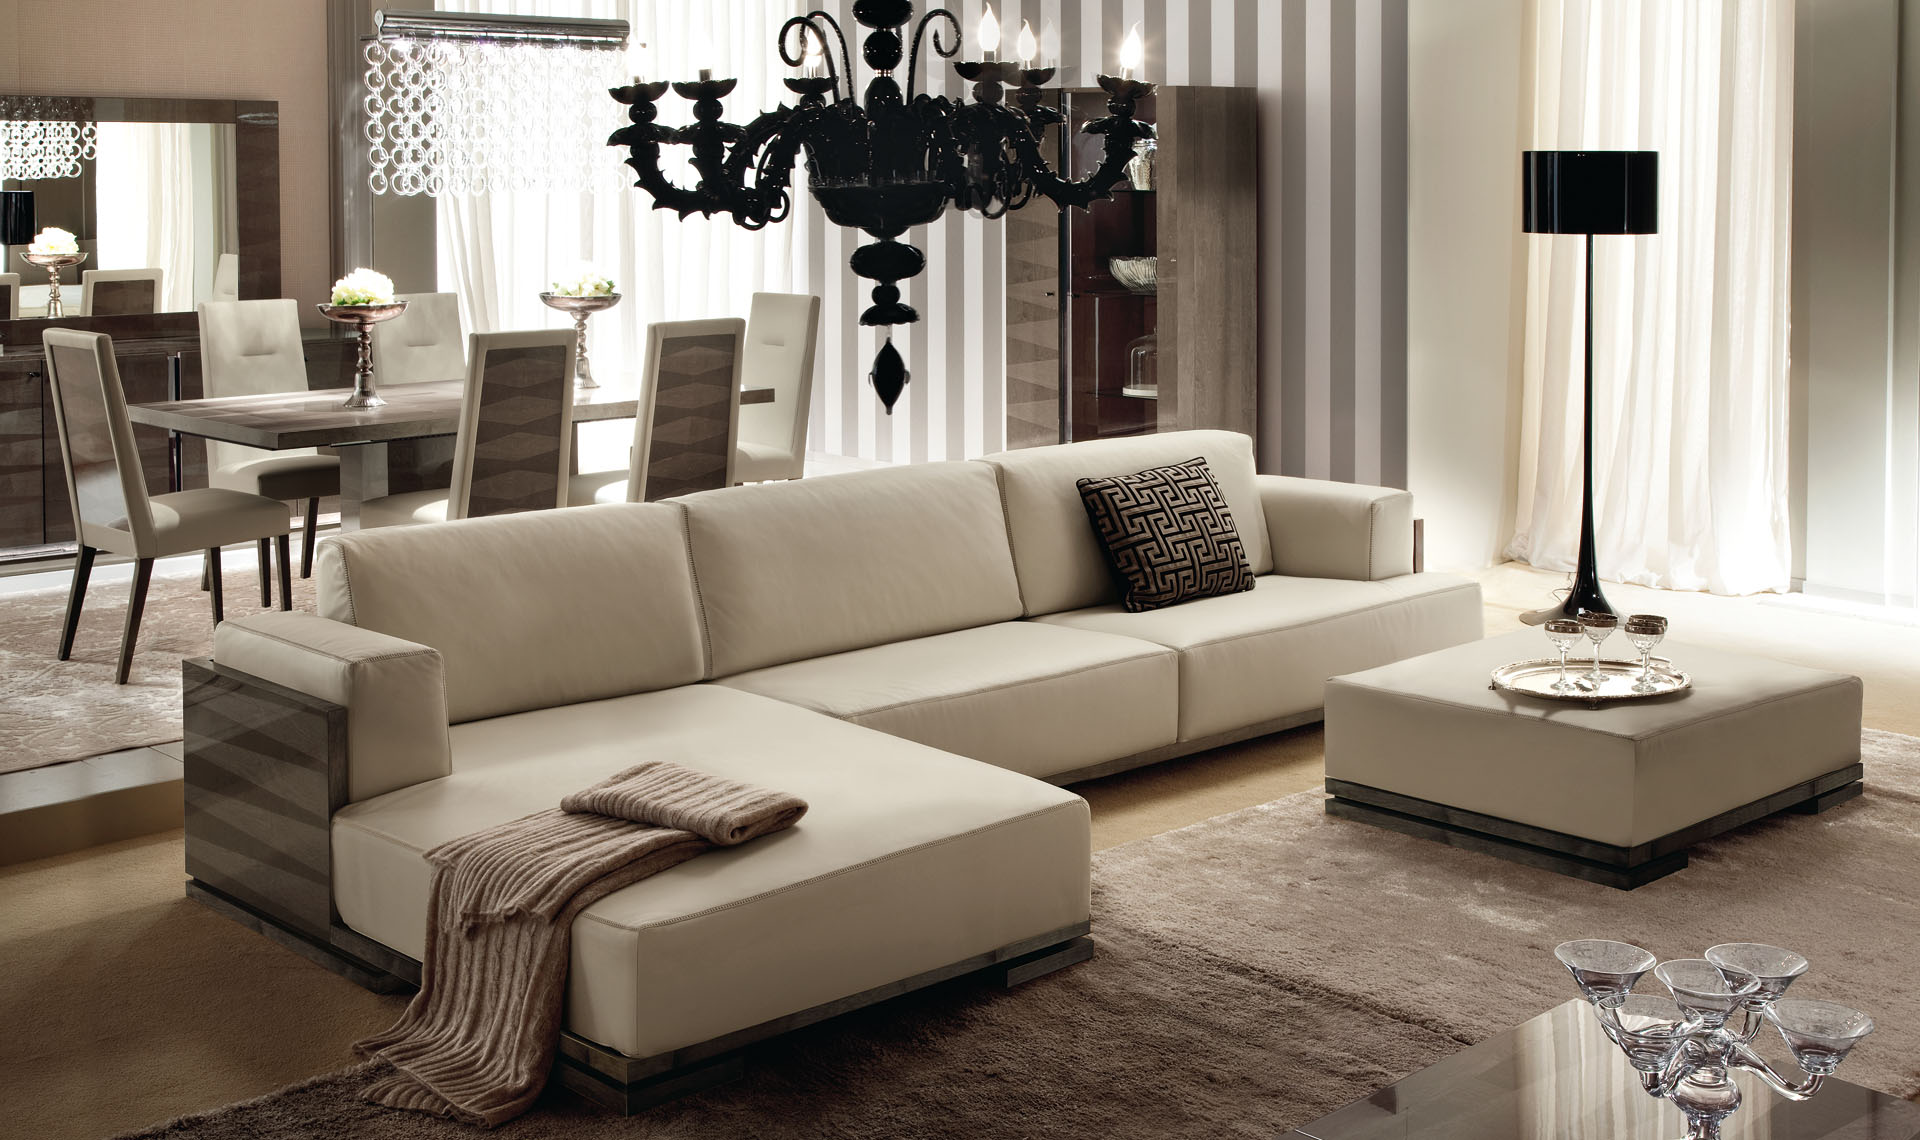 Monaco Living Room Overview 2